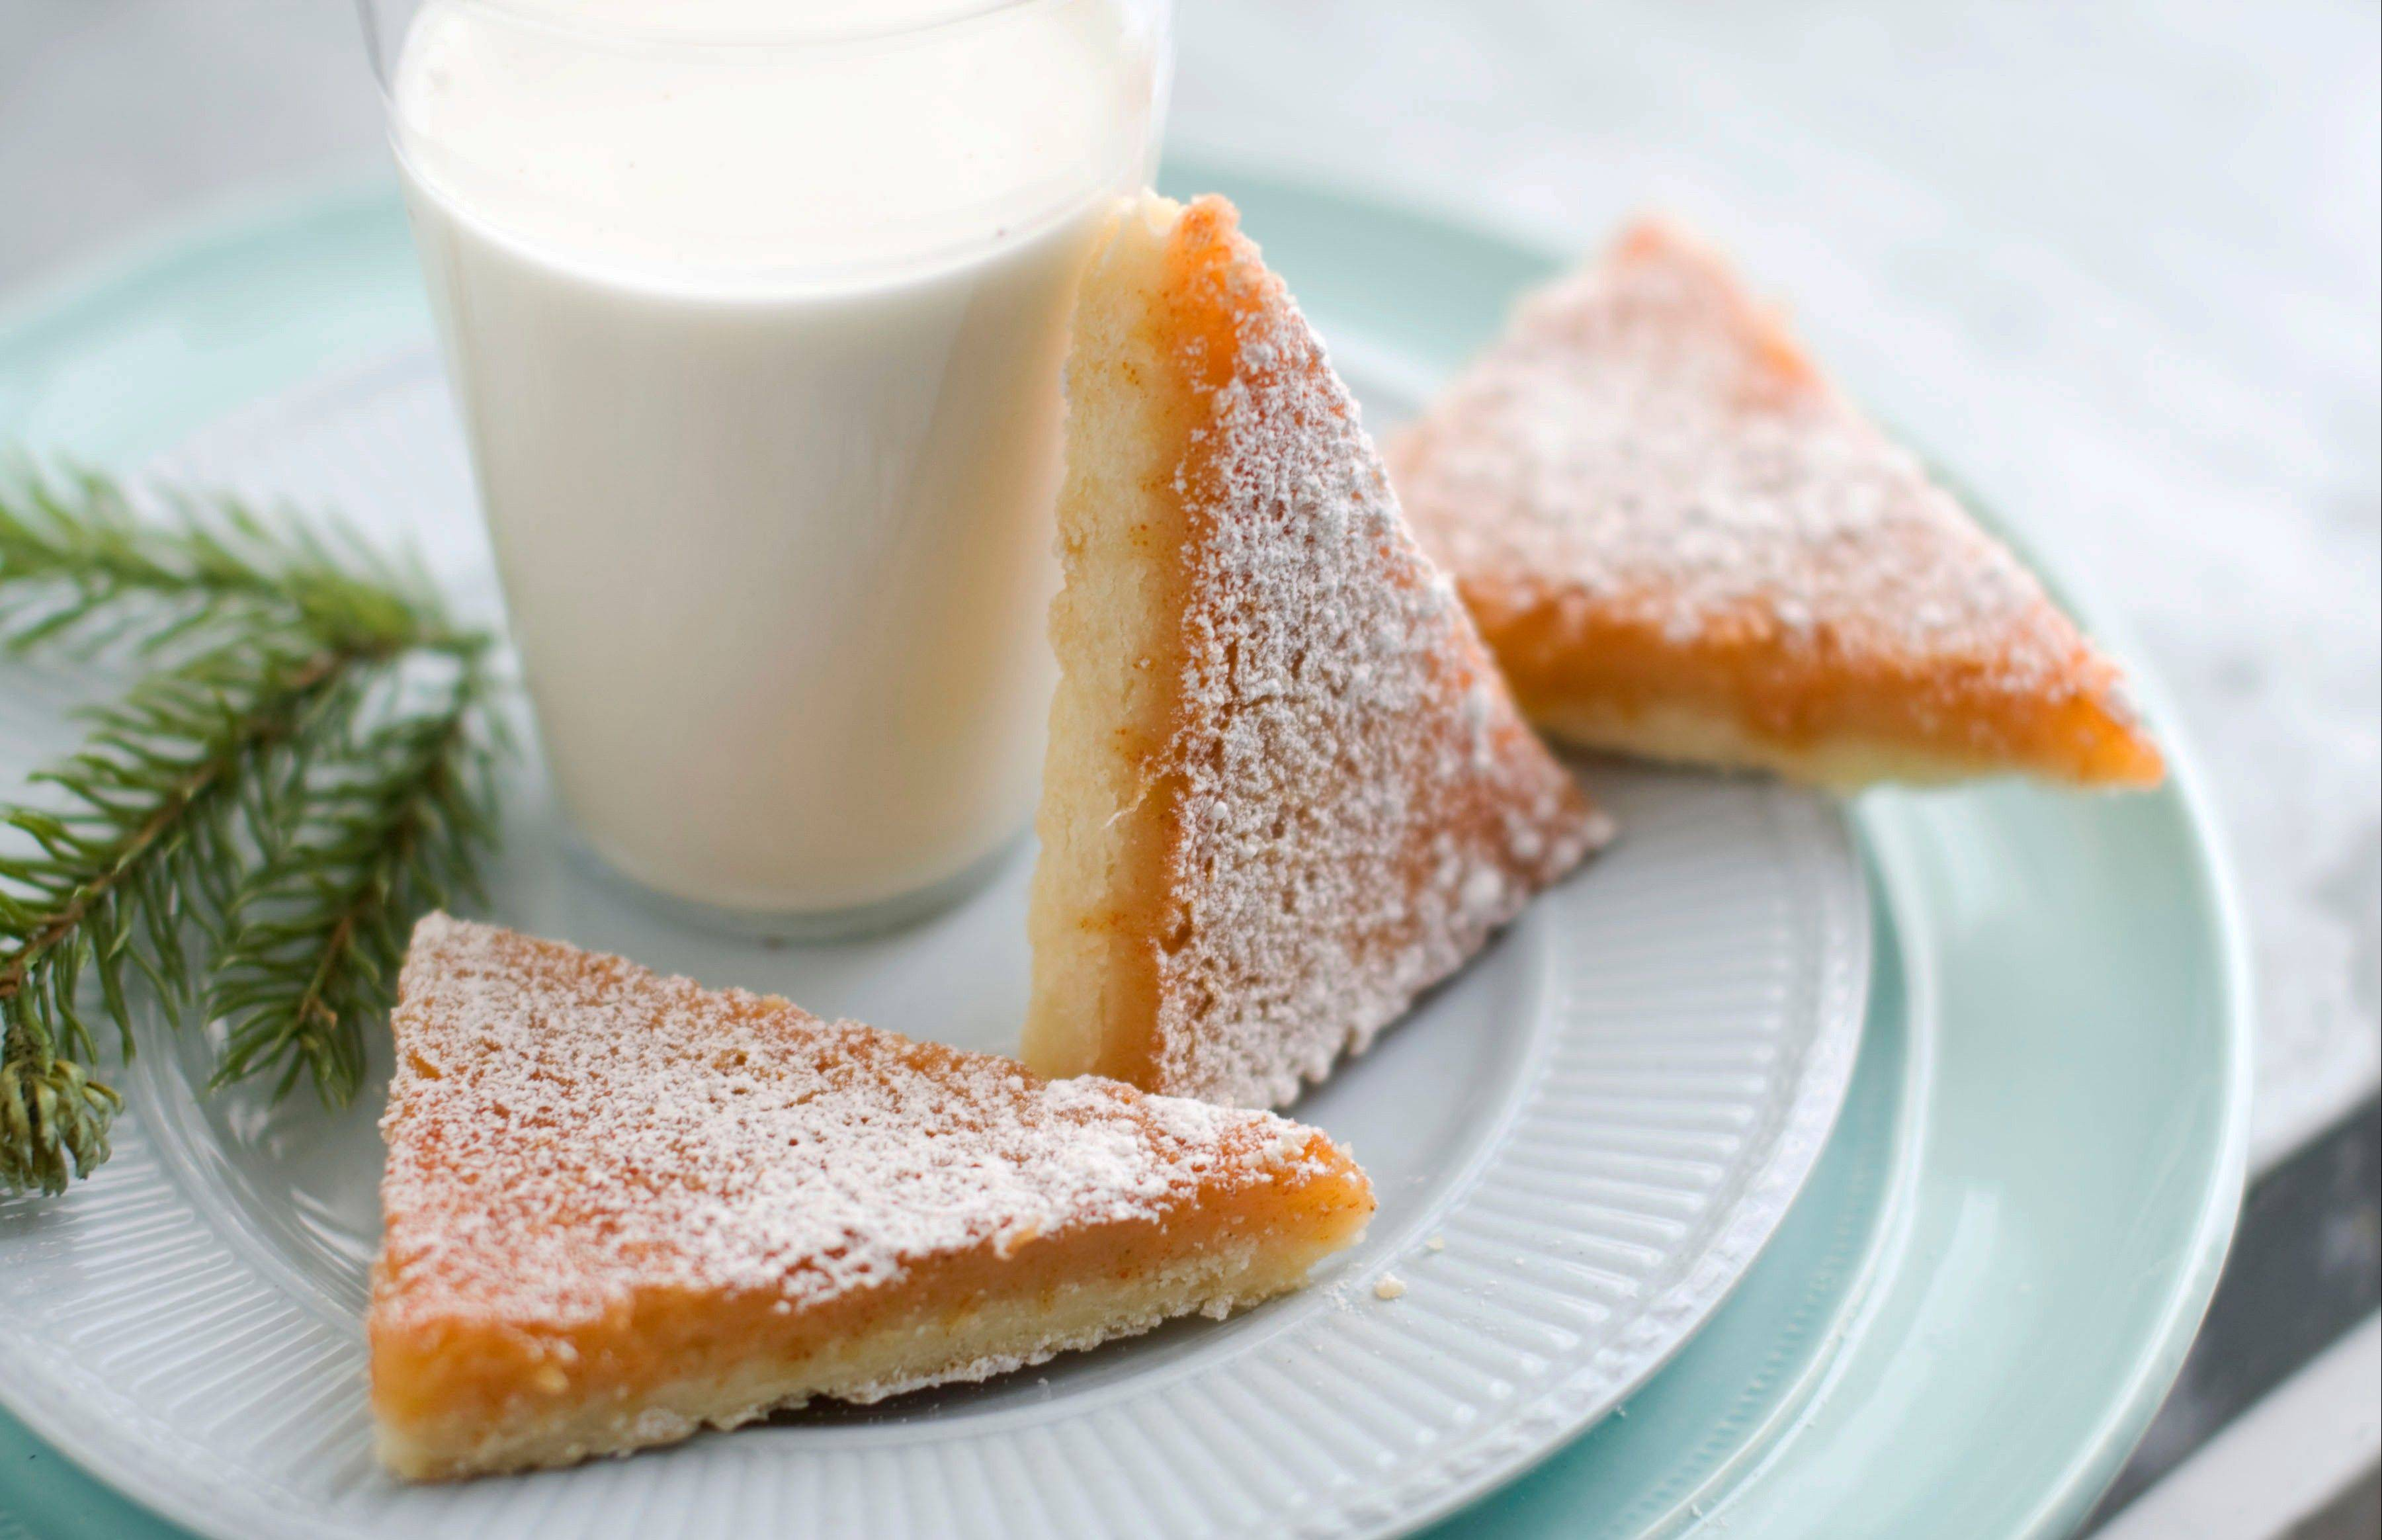 Paprika puts a fresh take on classic lemon bars.